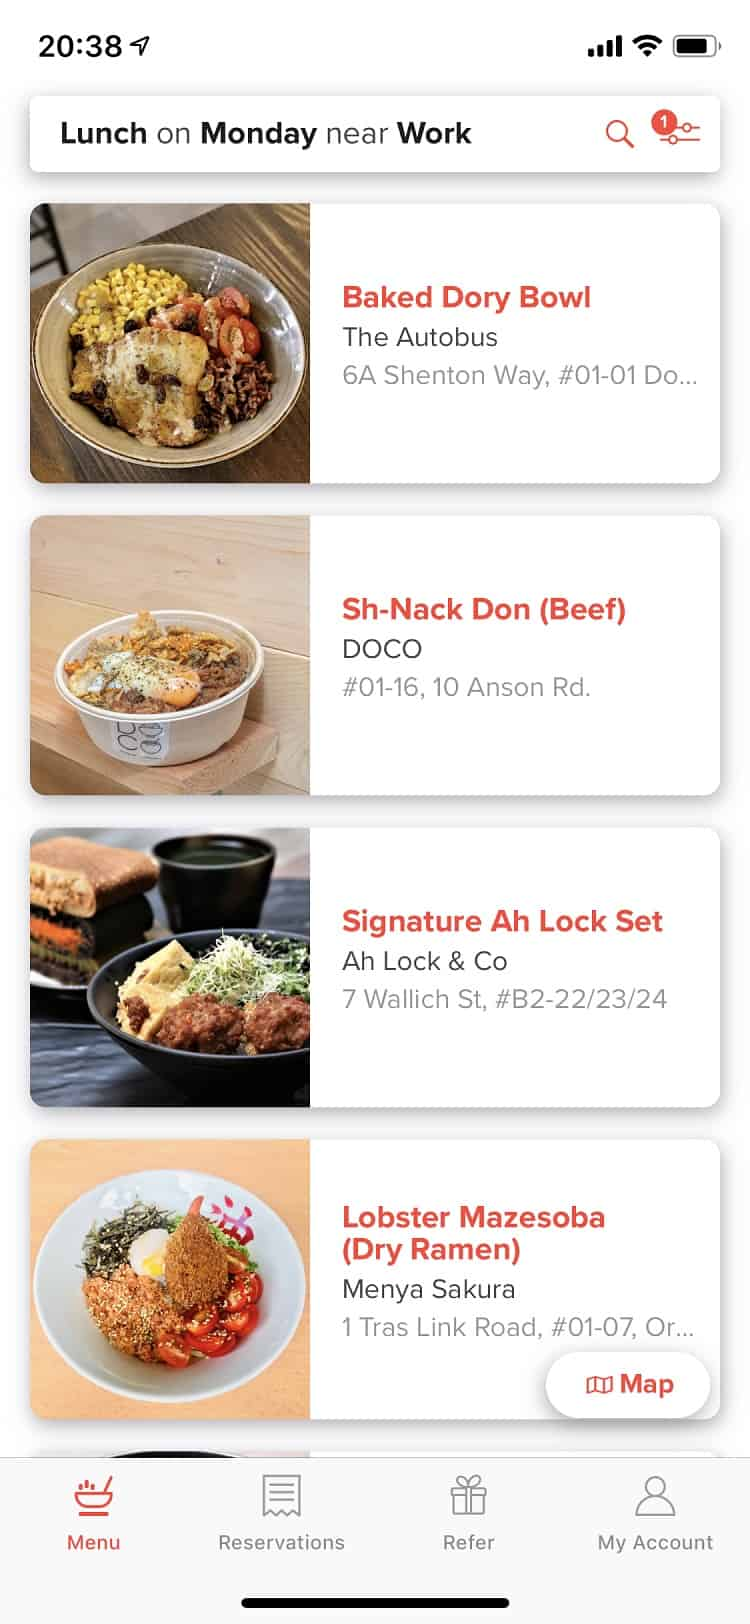 available-lunches-cbd-mealpal